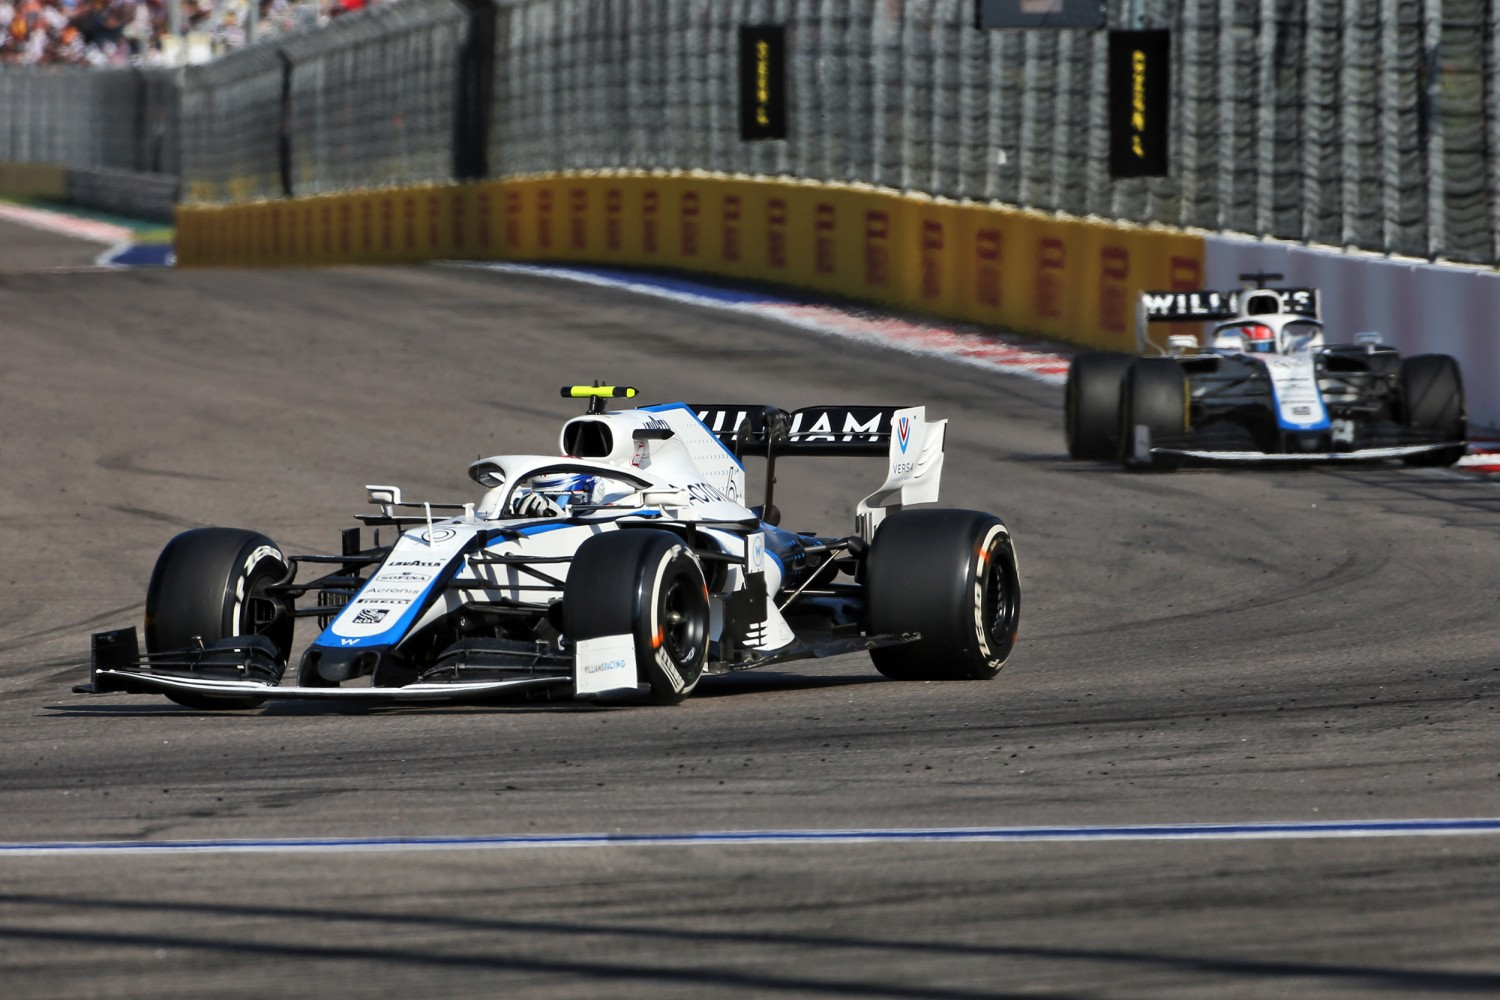 Williams working with Dorilton 'pretty much every day' - Roberts - F1i.com